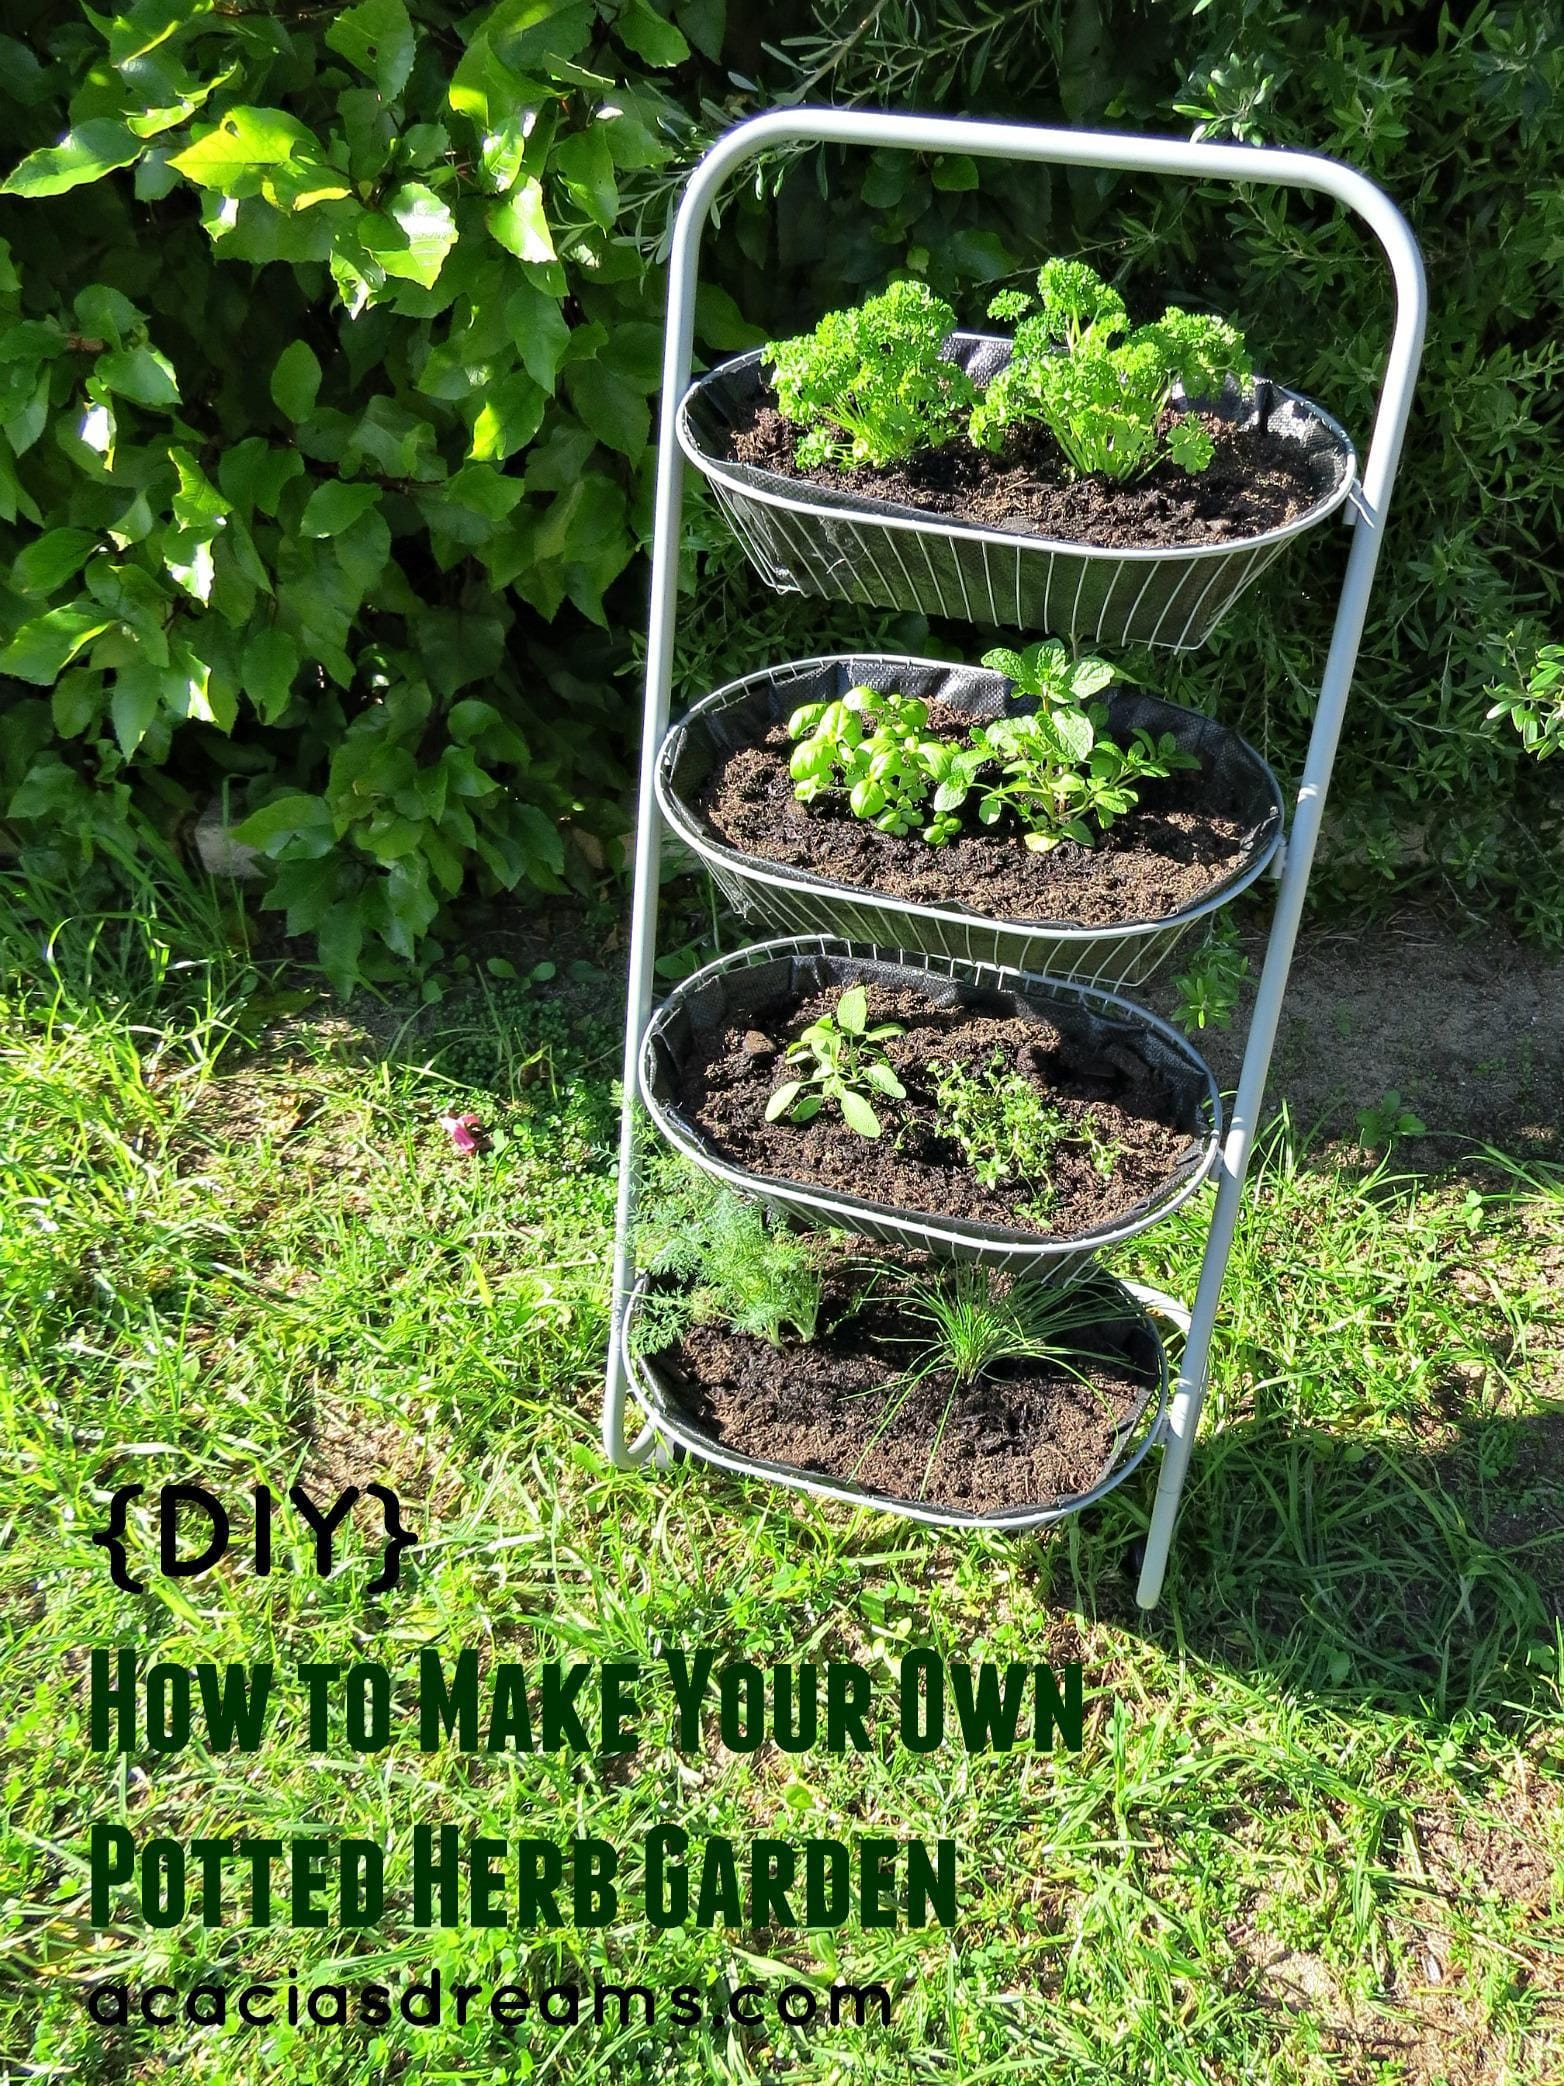 Simphome.com diy how to make your own potted herb garden diy pinterest inside potted herb garden ideas